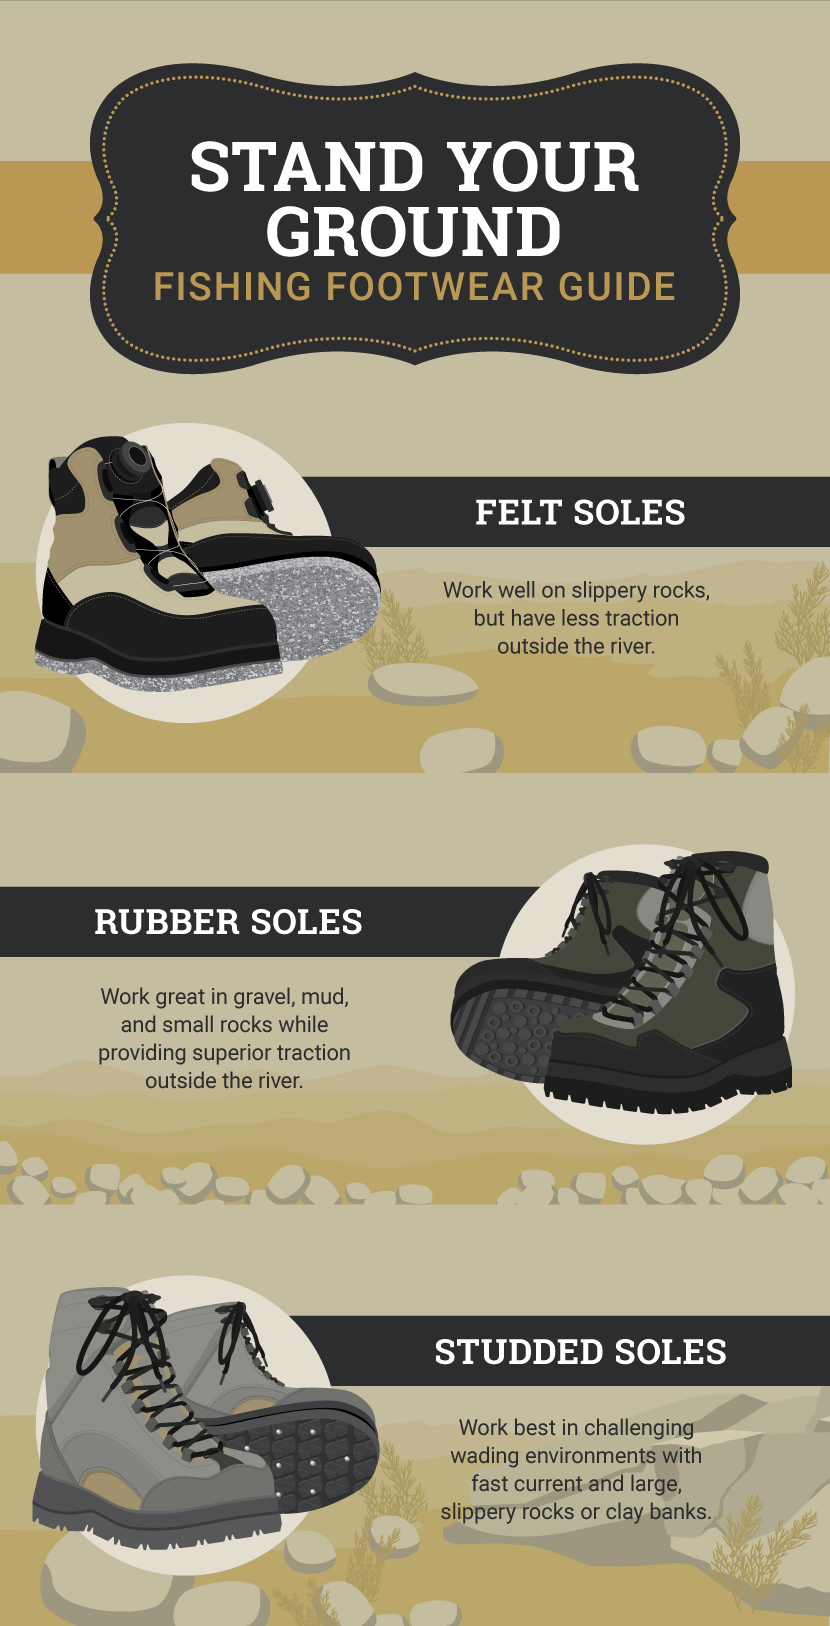 Wader Footwear - A Guide to Choosing the Right Fishing Waders